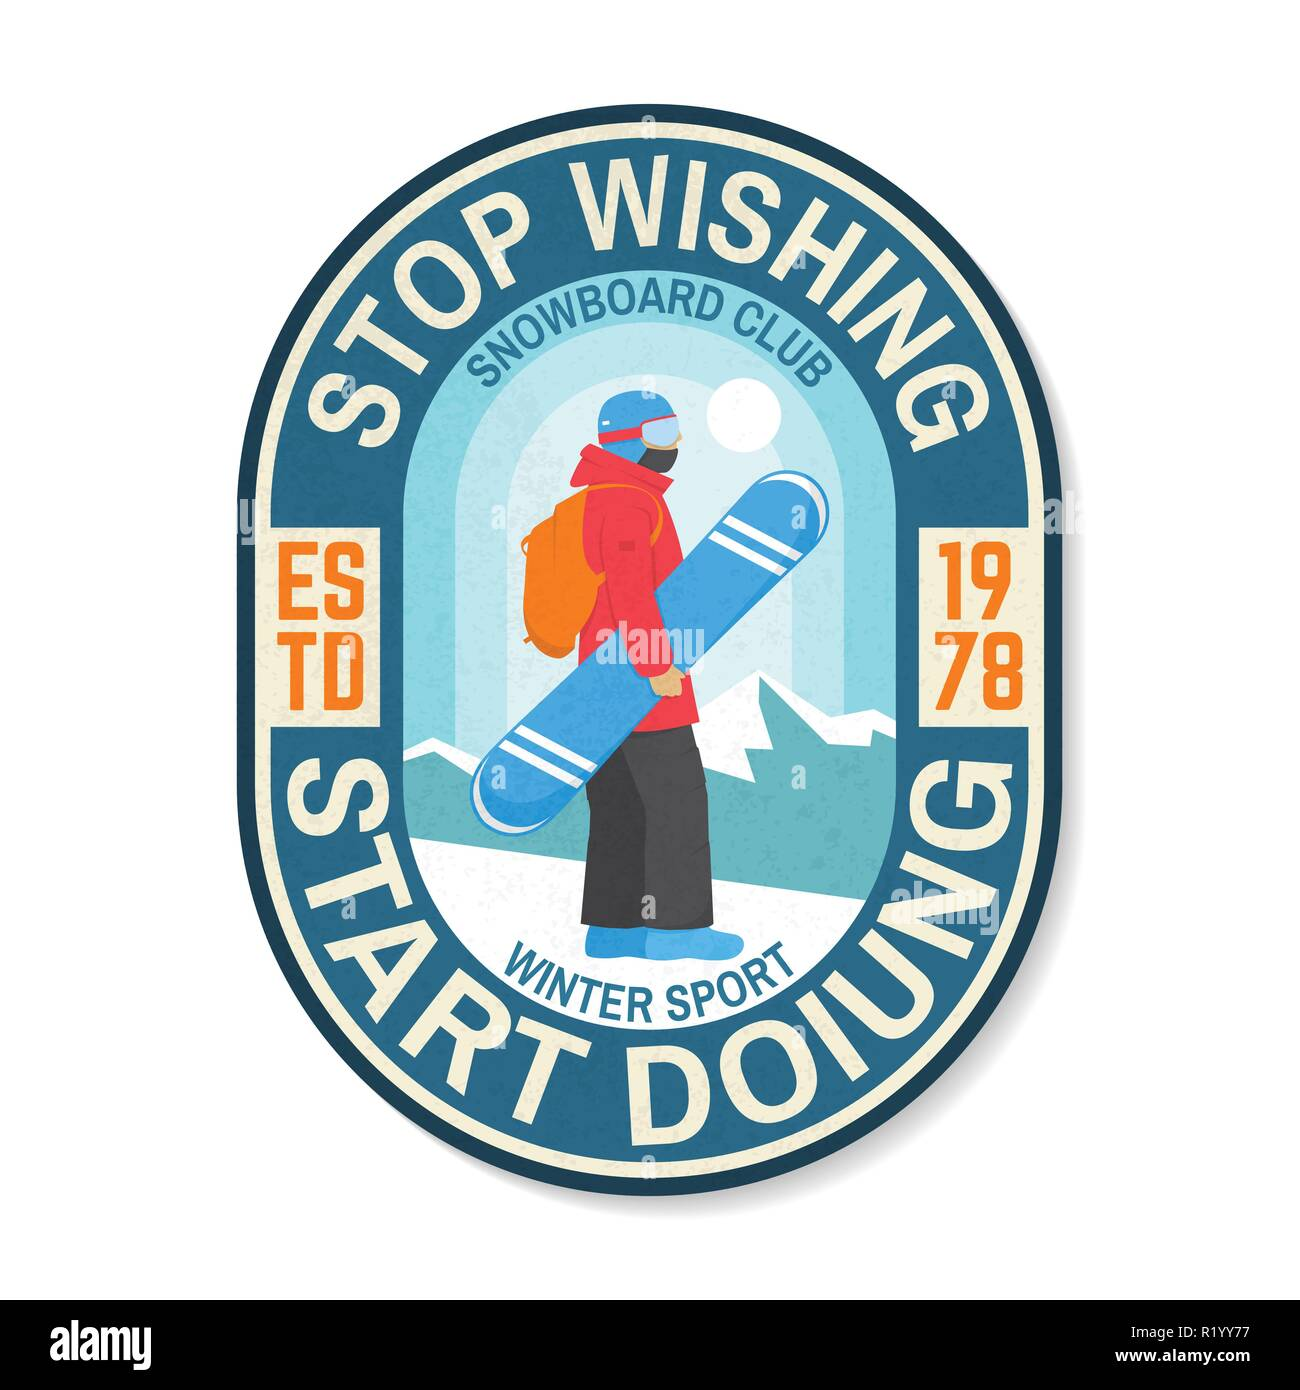 Stop wishing, start doing. Snowboard Club patch. Vector illustration. Concept for shirt , print, stamp, badge, patch or tee. Design with snowboarder silhouette. Extreme winter sport - Stock Image